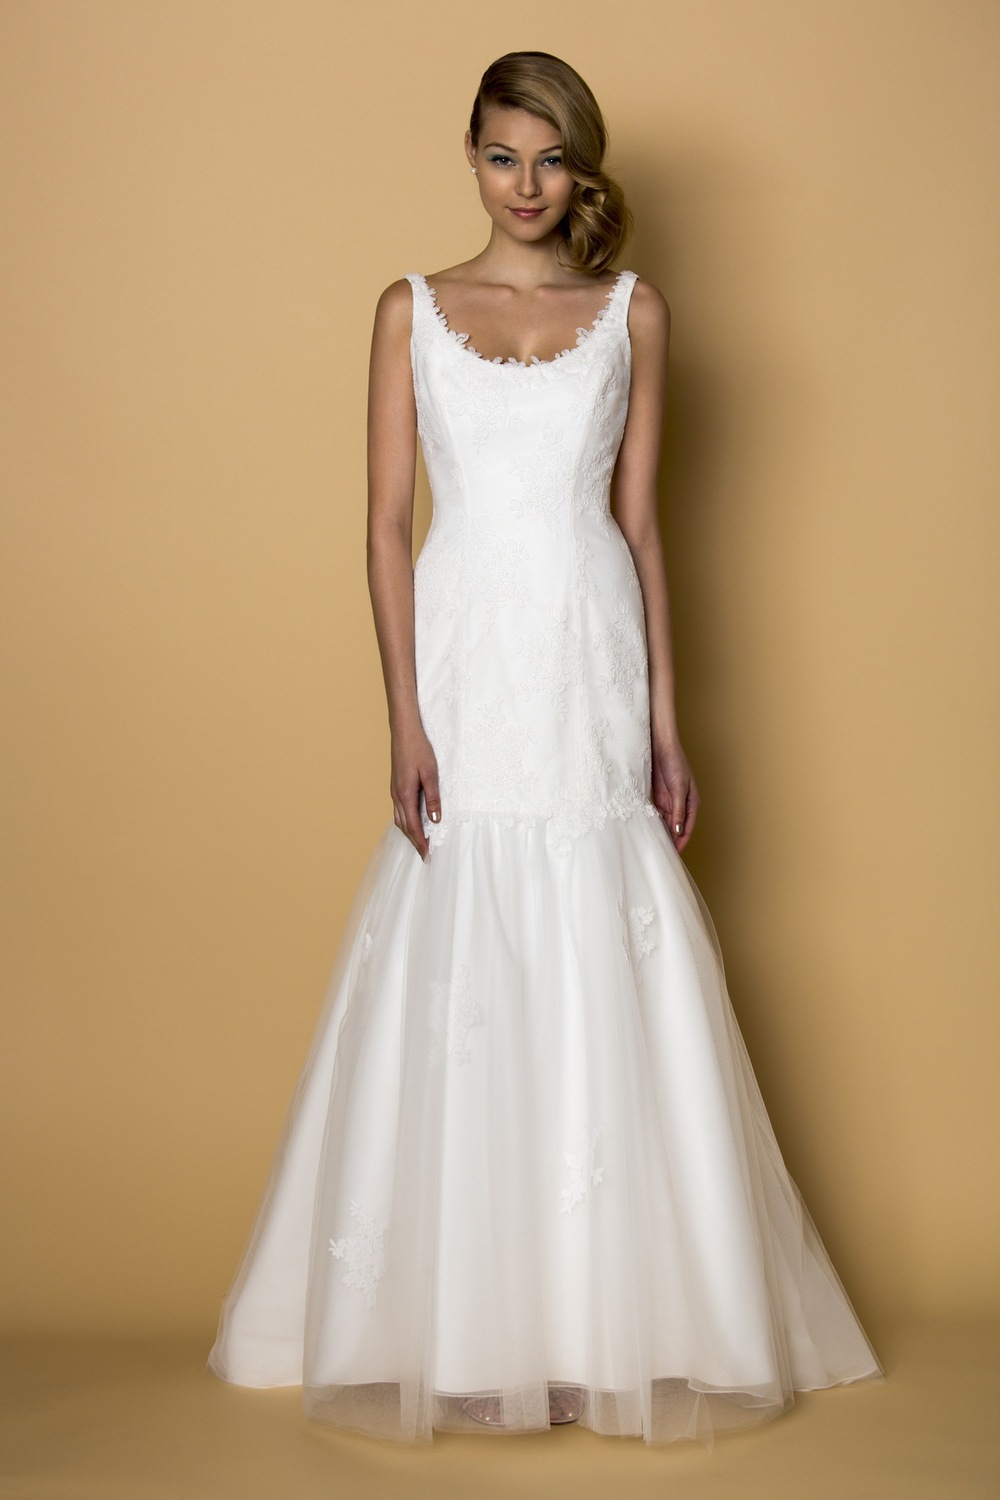 Blog Isabel ONeil Bridal Collection O Tampas Most Stylish Bridal Boutique O Wedding Dresses